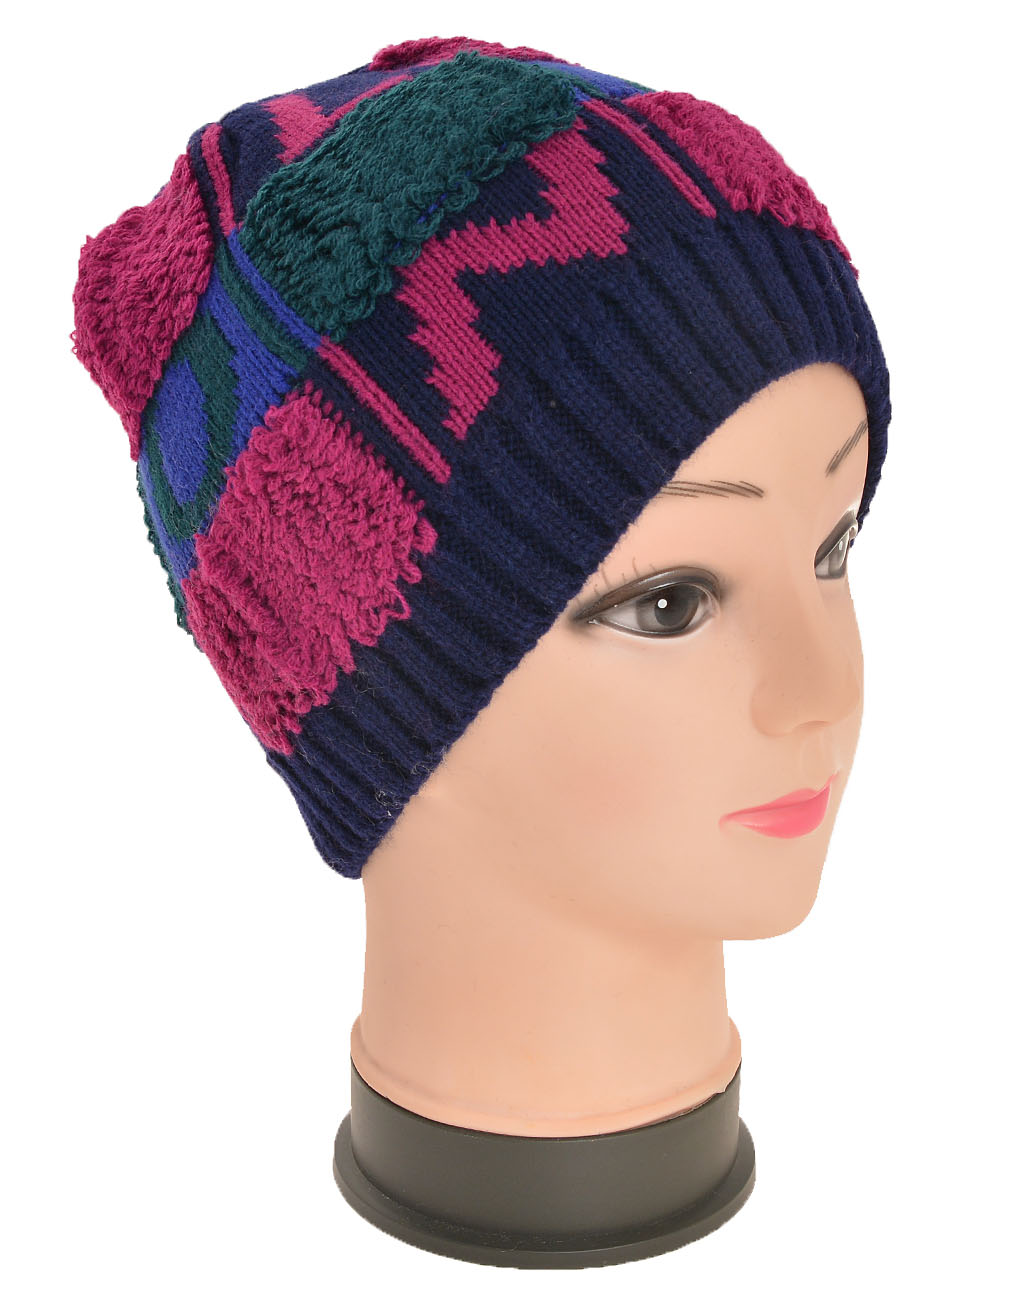 3160b8dbcaa49 Standard size London beanie hat wholesale prices   discounts